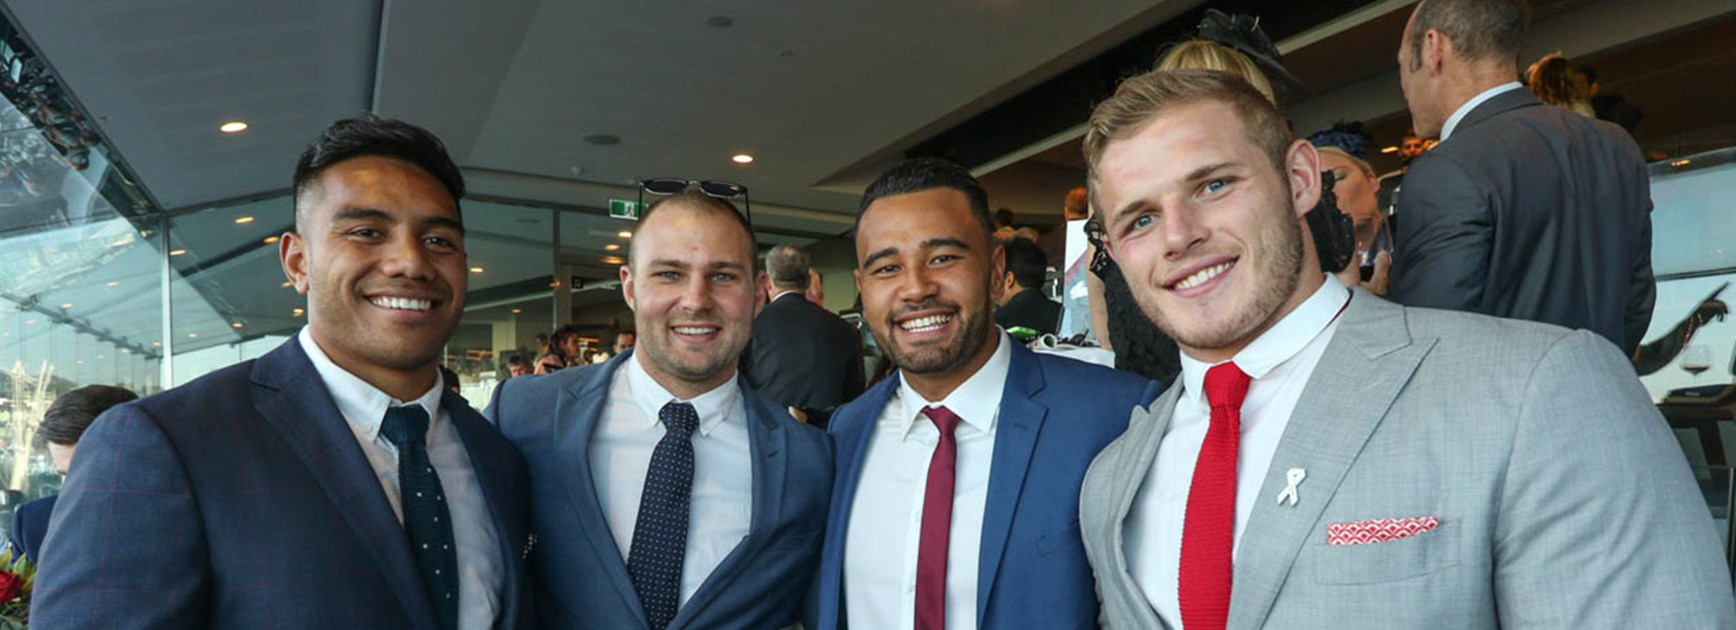 Rabbitohs Race Day is back!